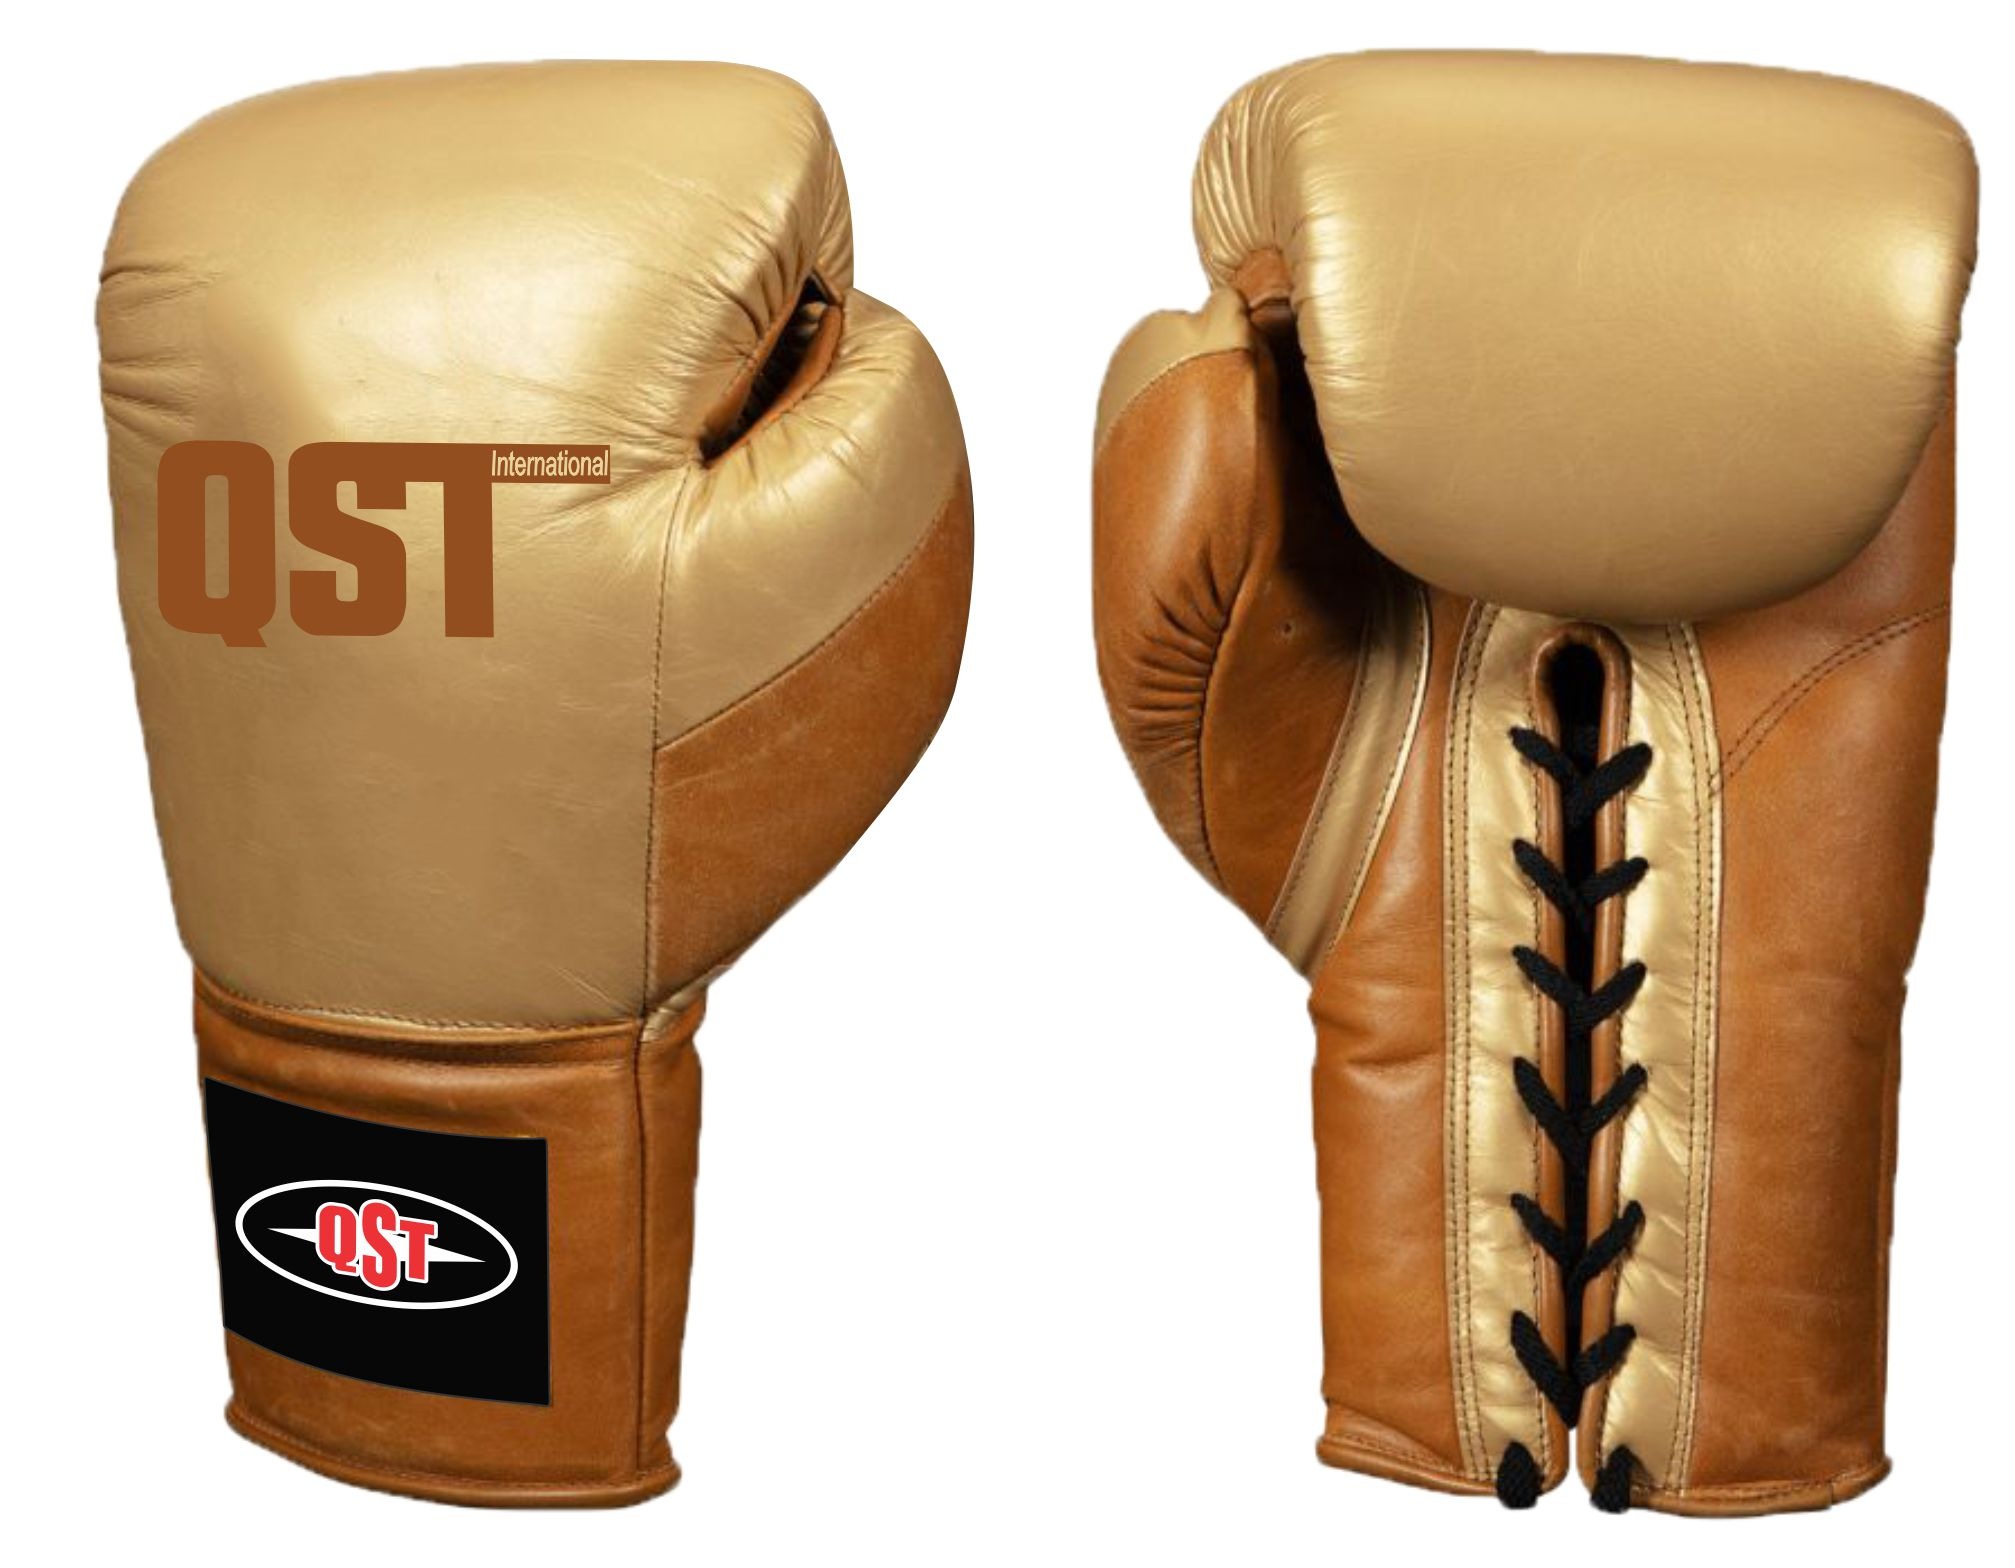 Lace up Boxing Gloves - PRG-3261